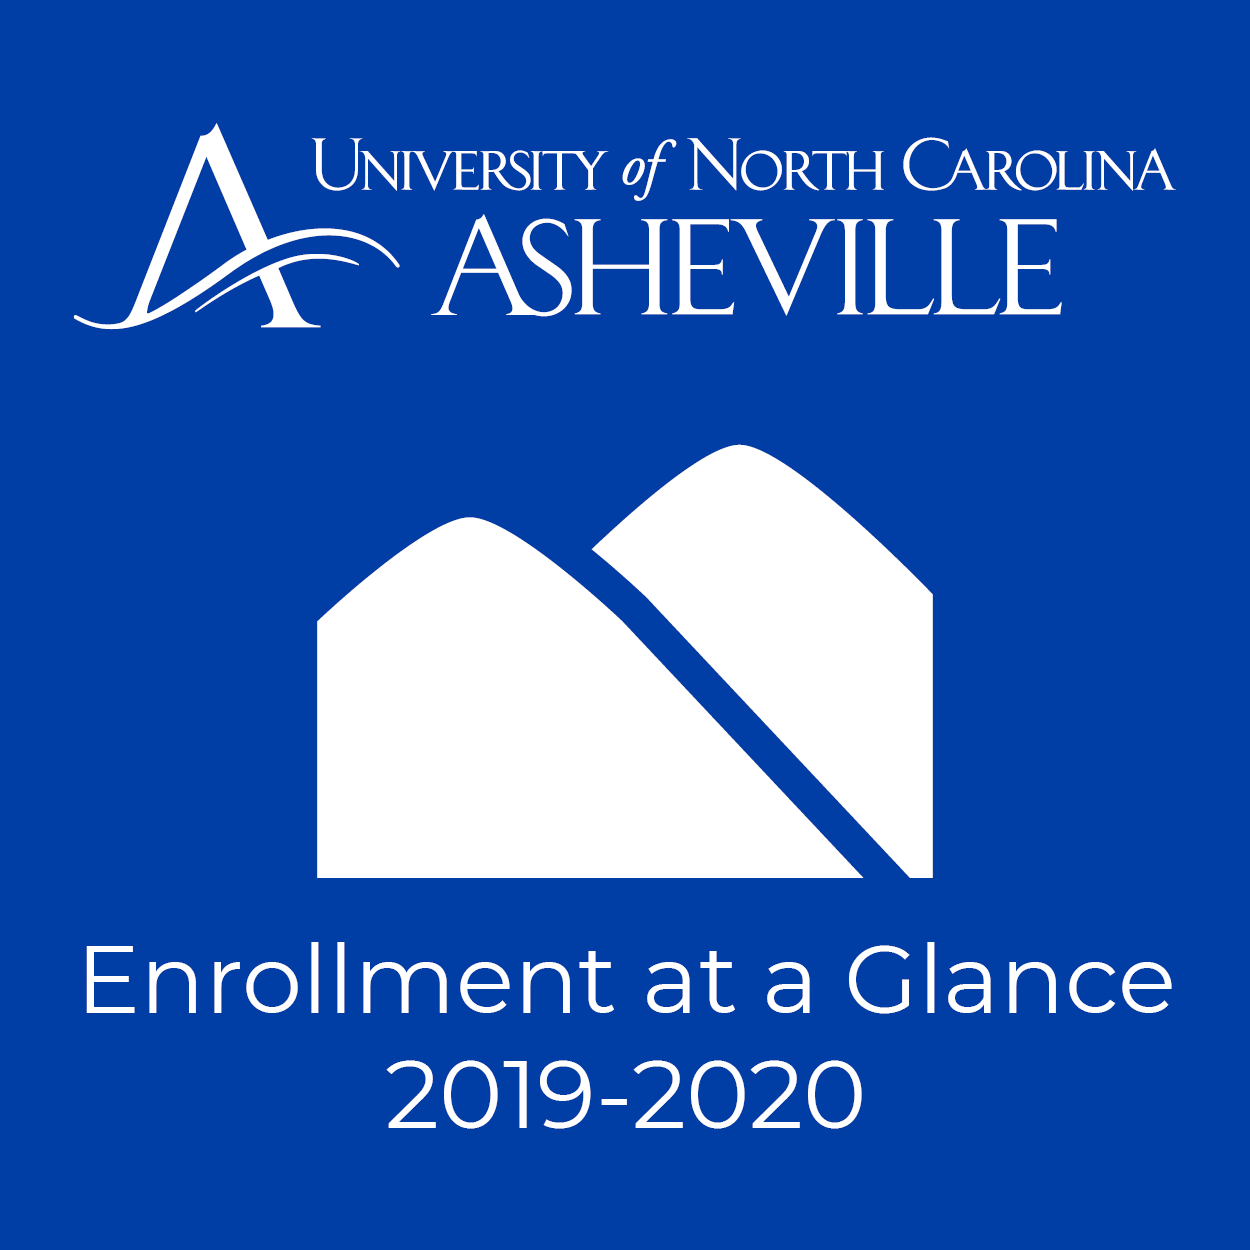 Enrollment at a Glance 2019-2020 graphic